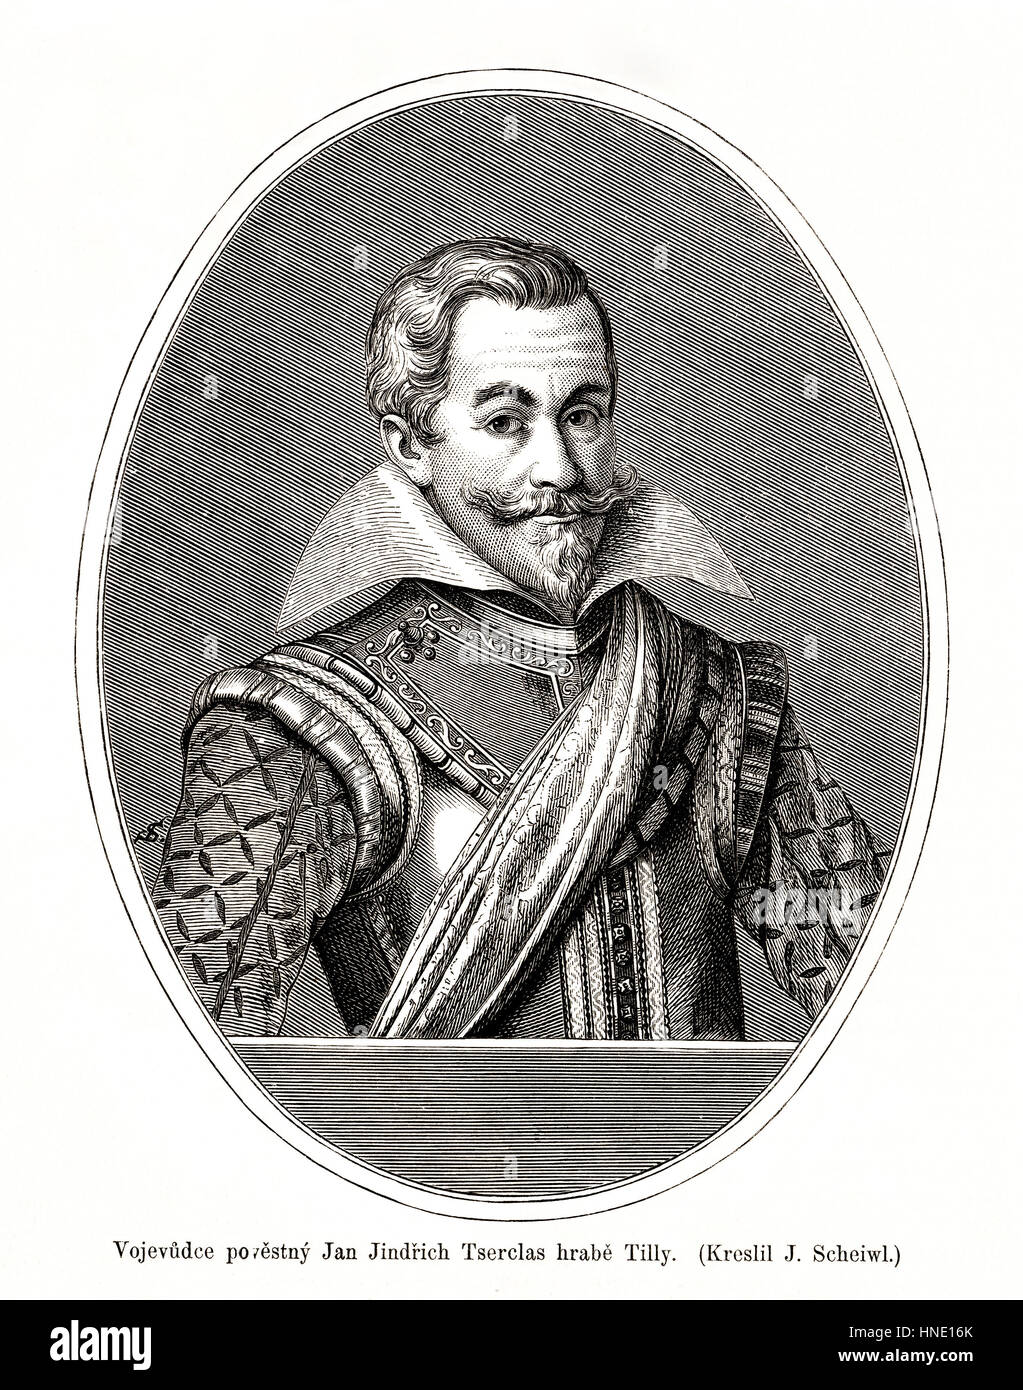 Johann Tserclaes, Count of Tilly, commander of the Catholic League in the Thirty Years' War. - Stock Image